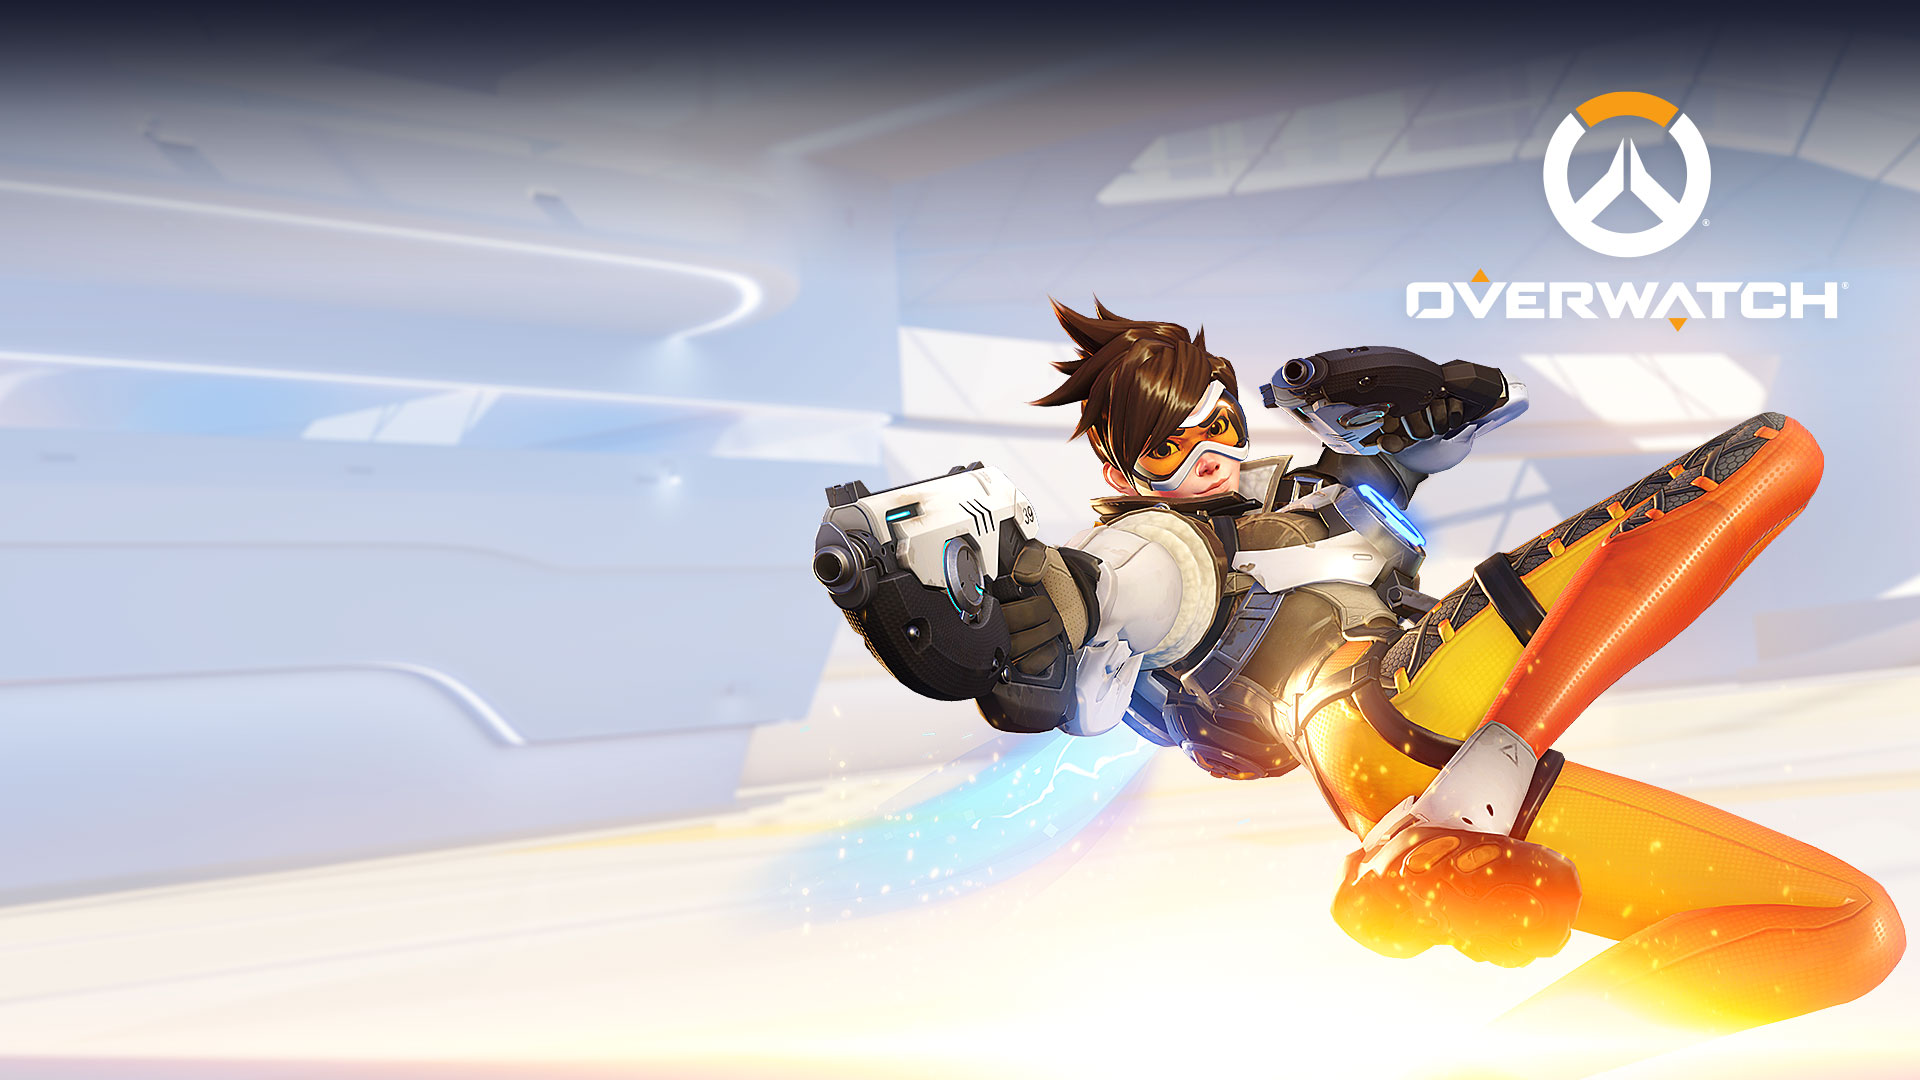 Overwatch hero Tracer jumping backwards with her pistols out.